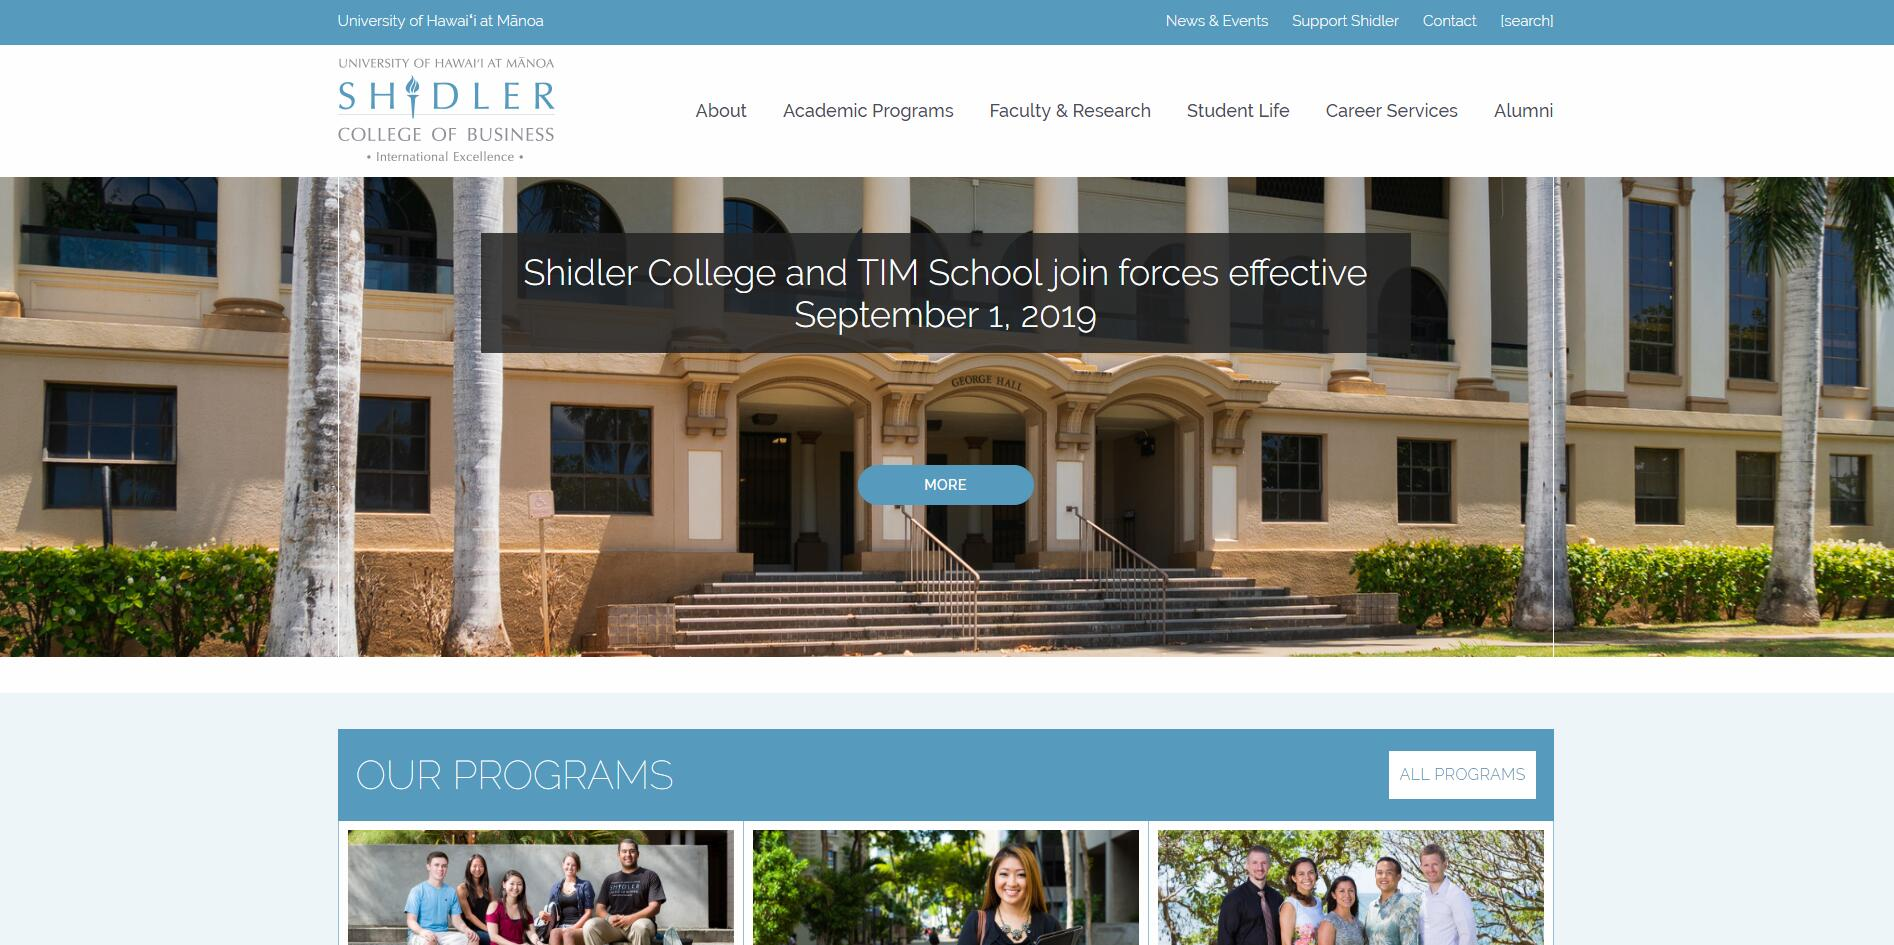 The Shidler College of Business at University of Hawaii--Manoa